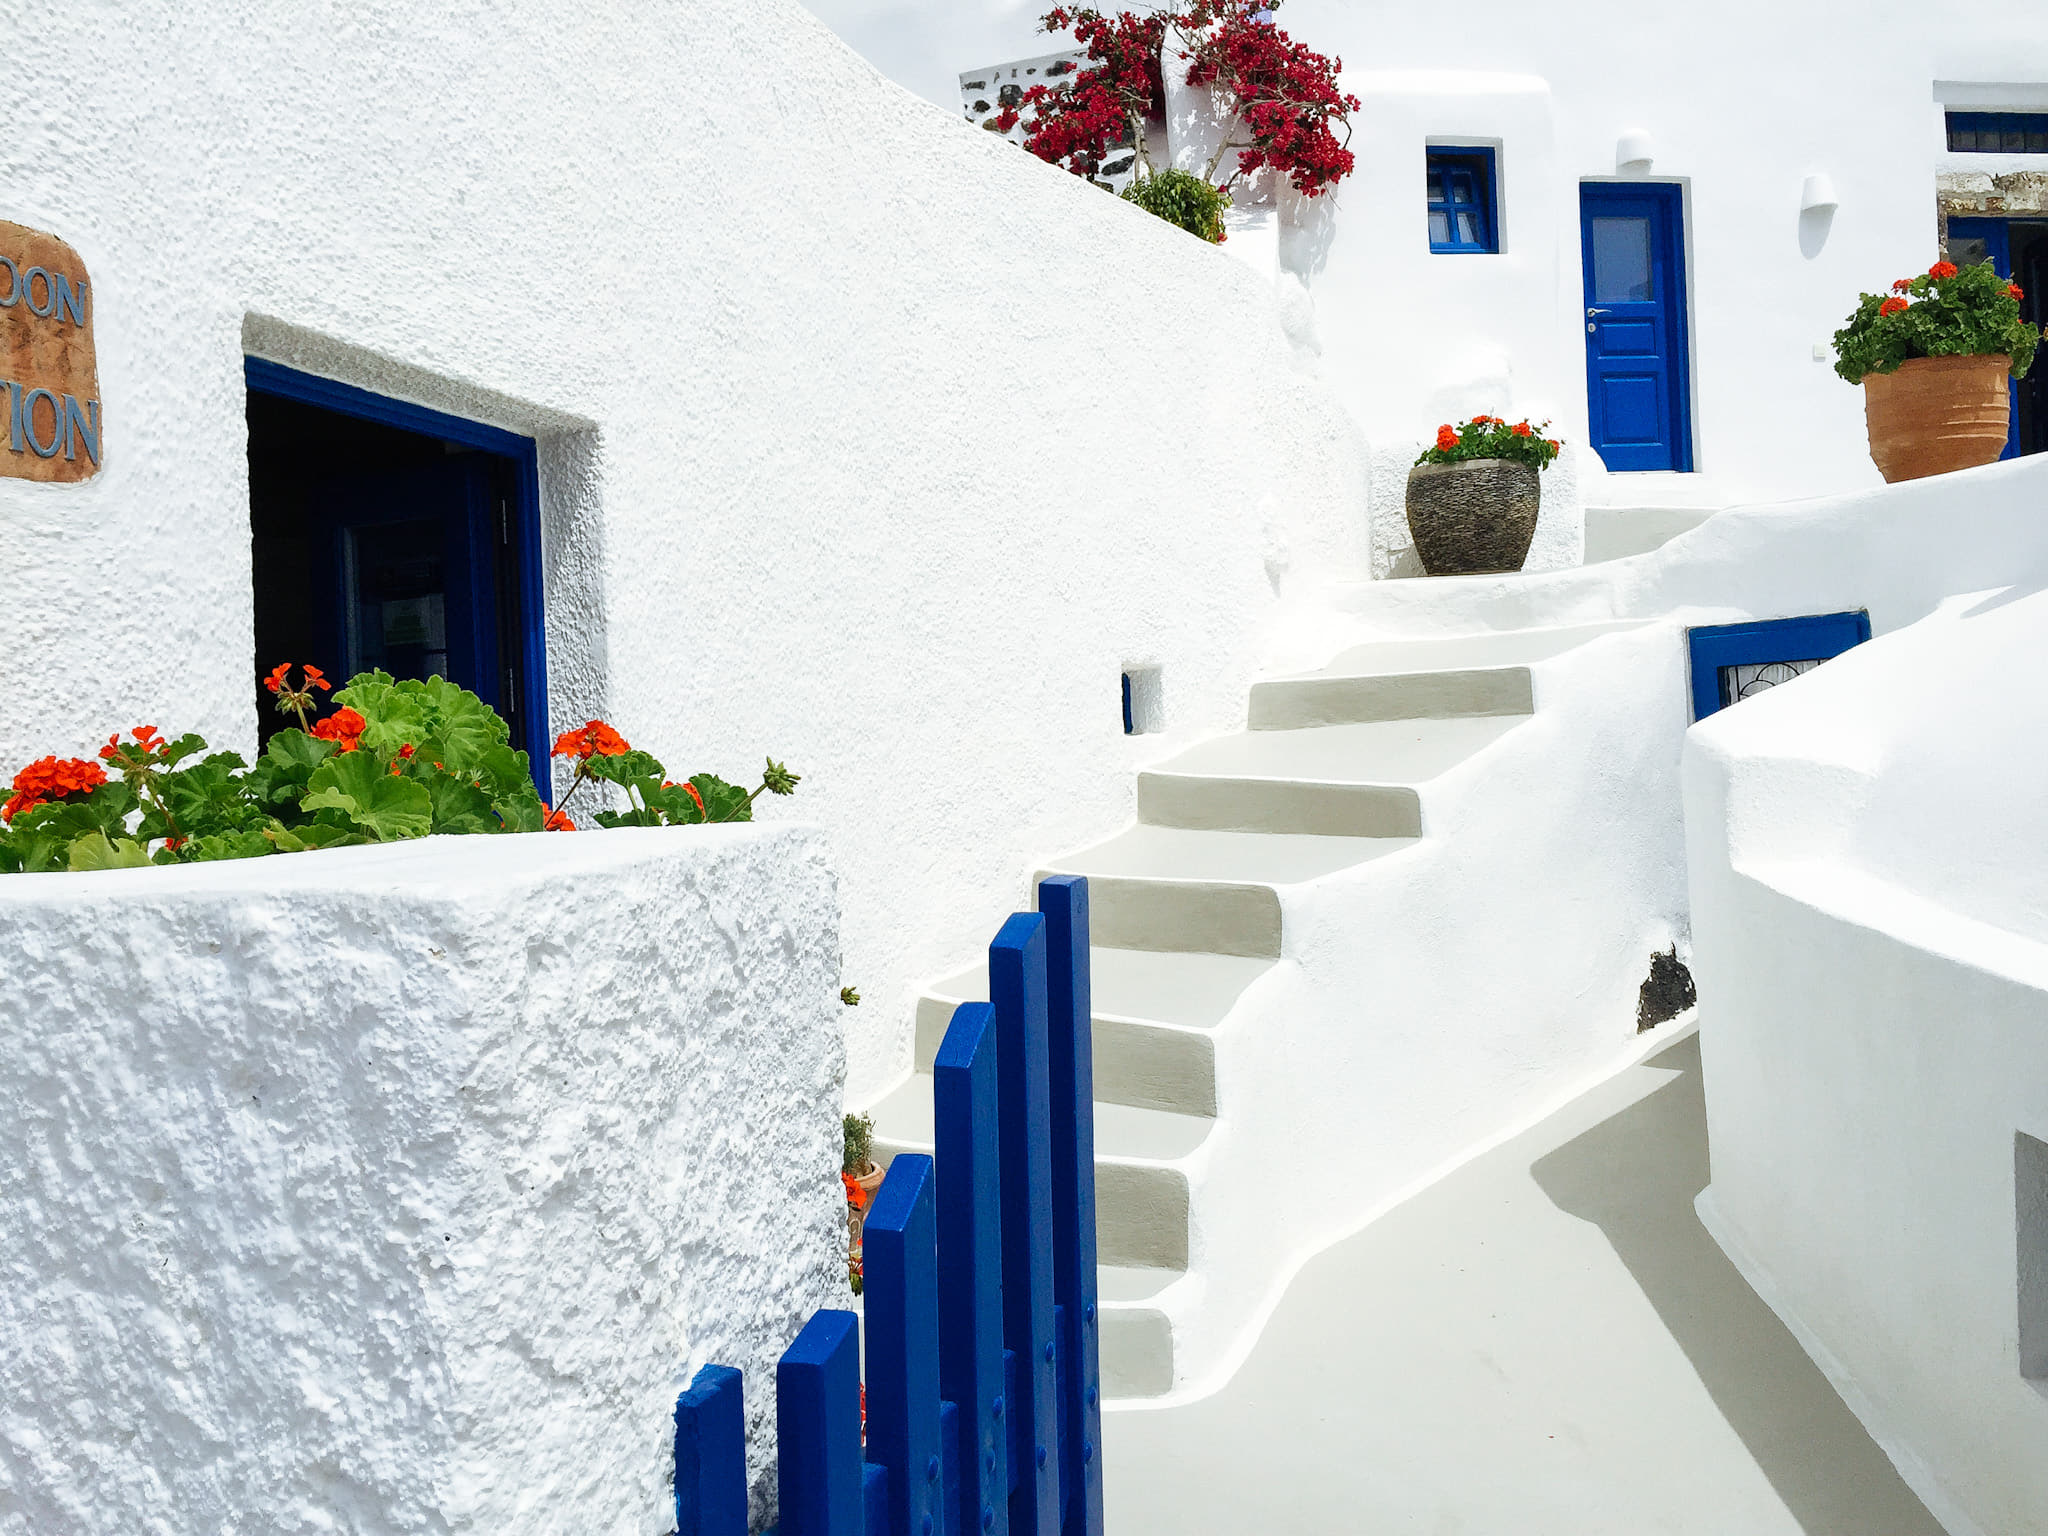 Where to stay in Santorini - Best Areas